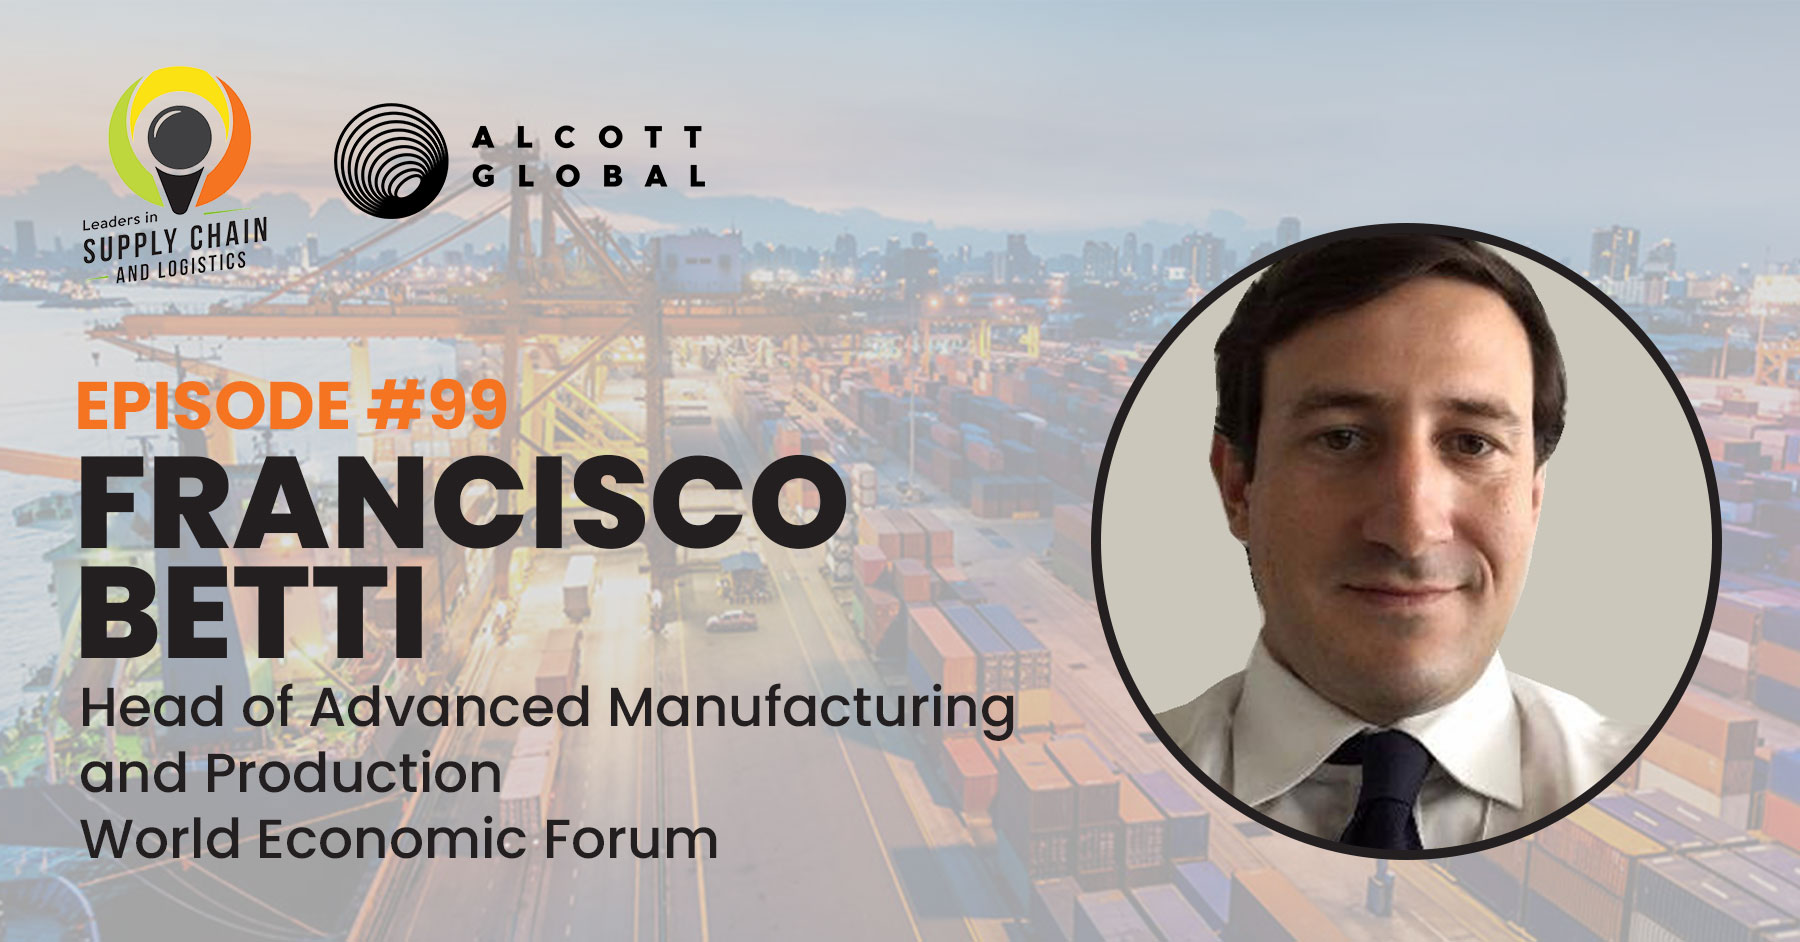 #99: Francisco Betti Head of Advanced Manufacturing and Production at World Economic Forum Featured Image